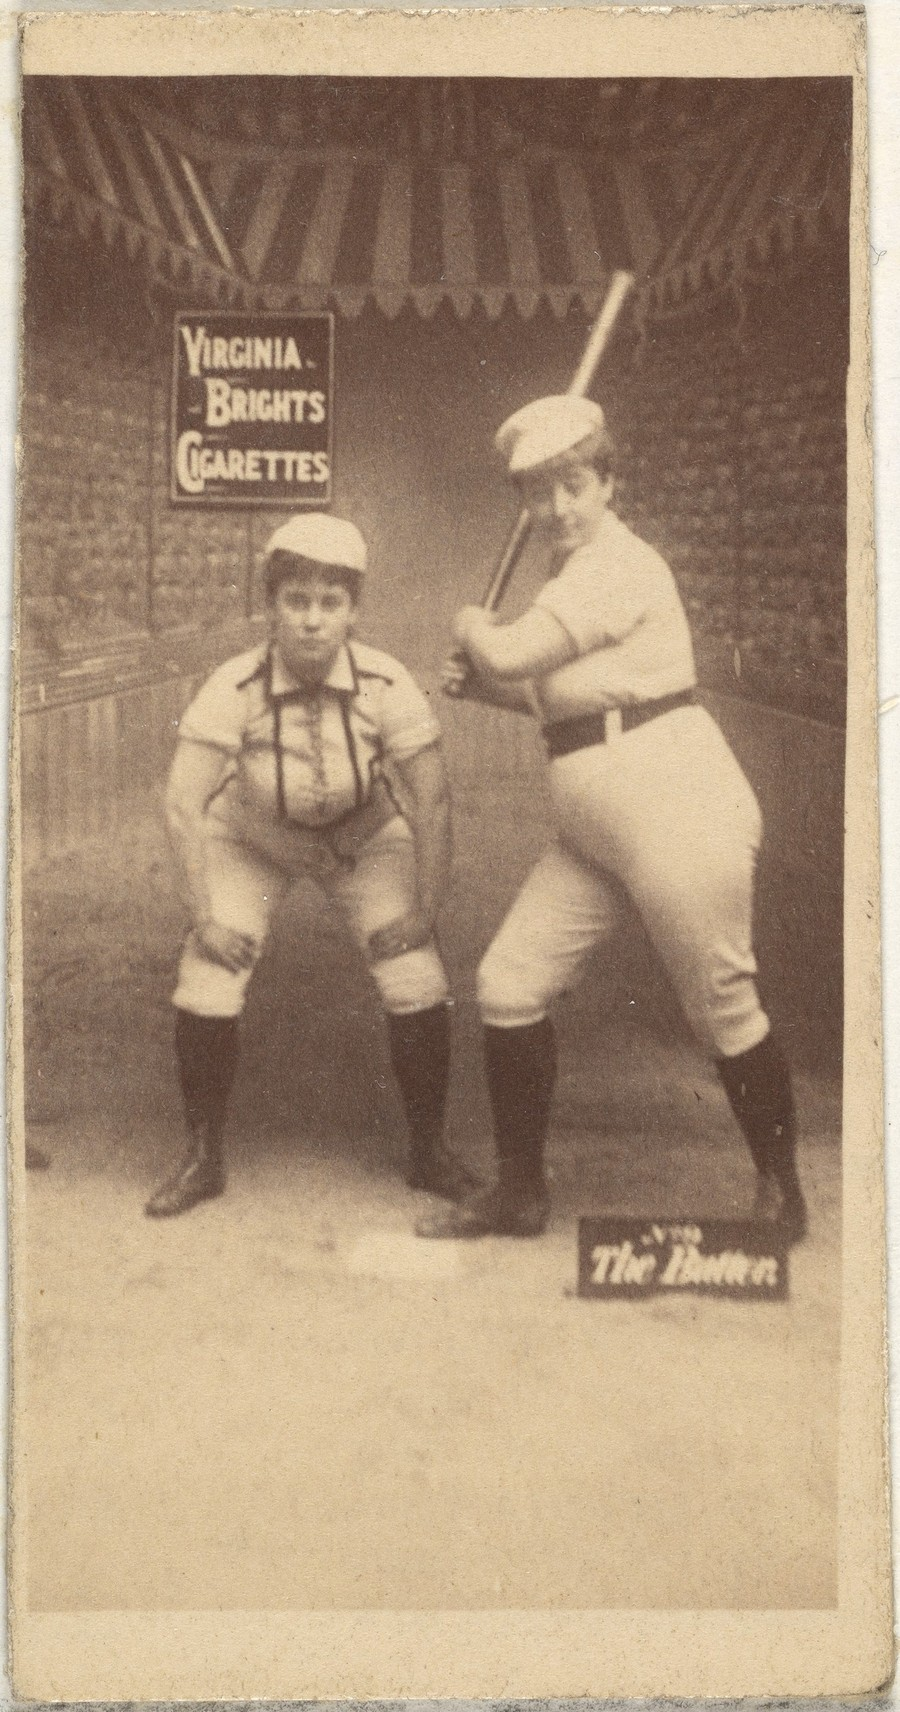 The Batter, from the Girl Baseball Players series (N48, Type 2) for Virginia Brights Cigarettes / 1886